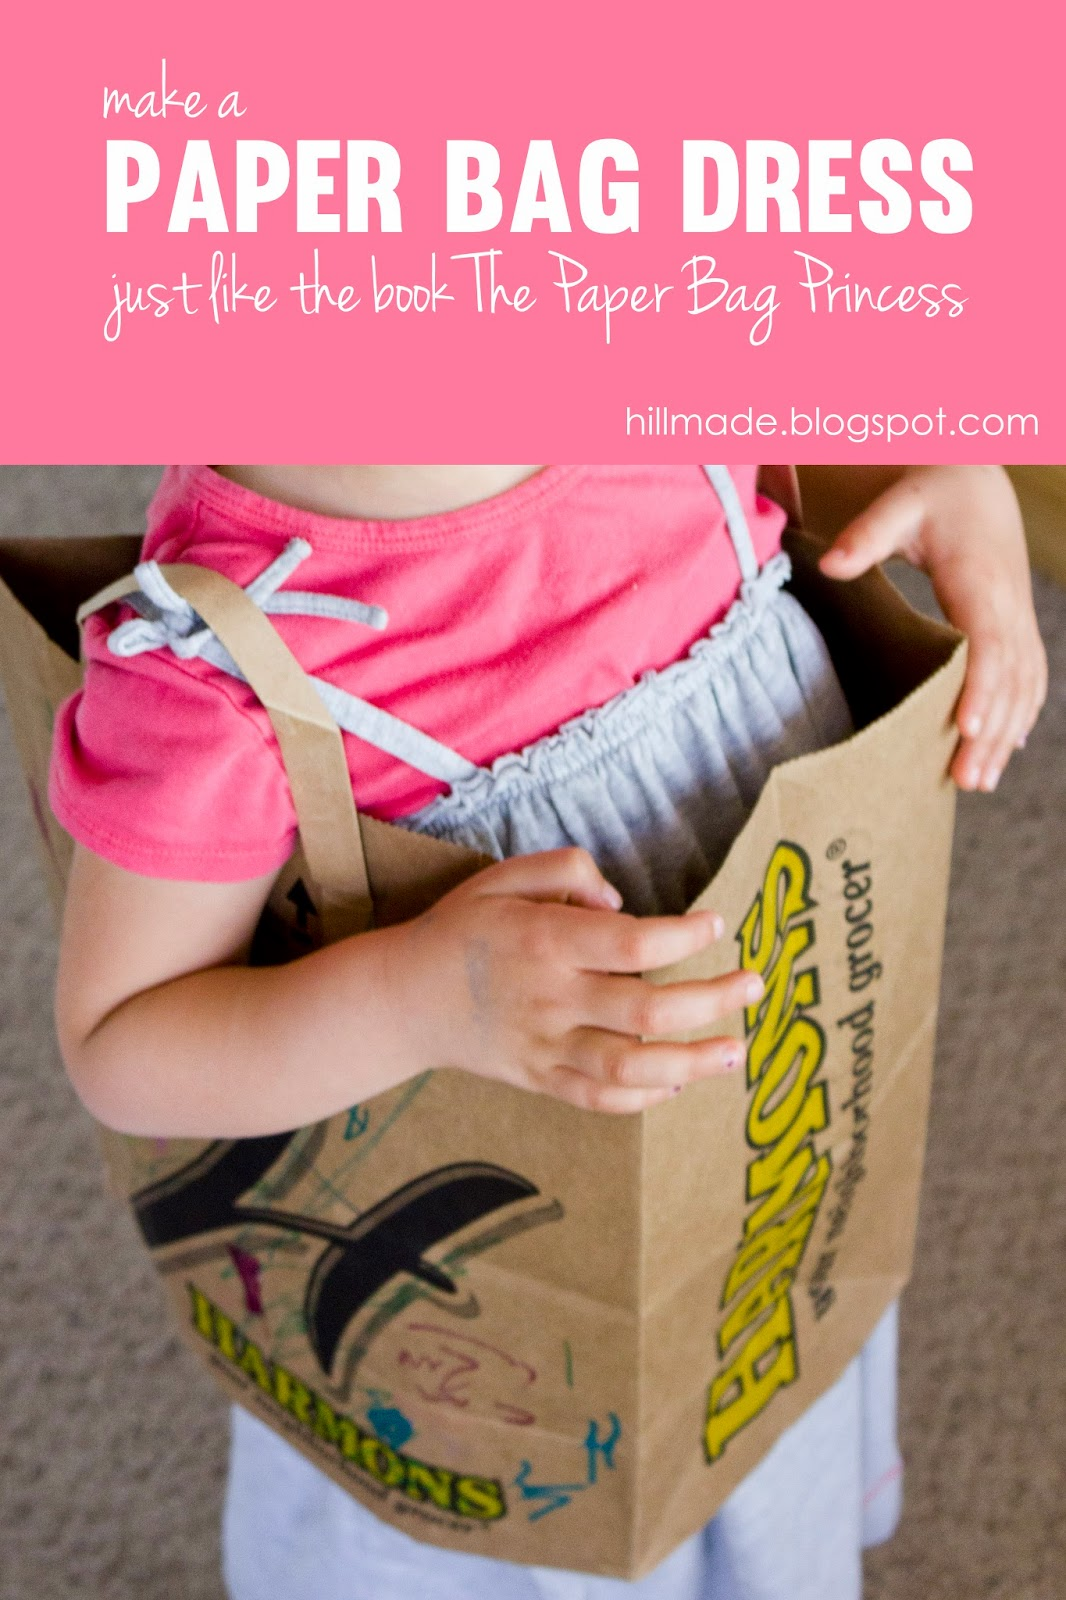 Make a paper bag dress to go along with the story The Paper Bag Princess by Robert Munsch | hillmade.blogspot.com